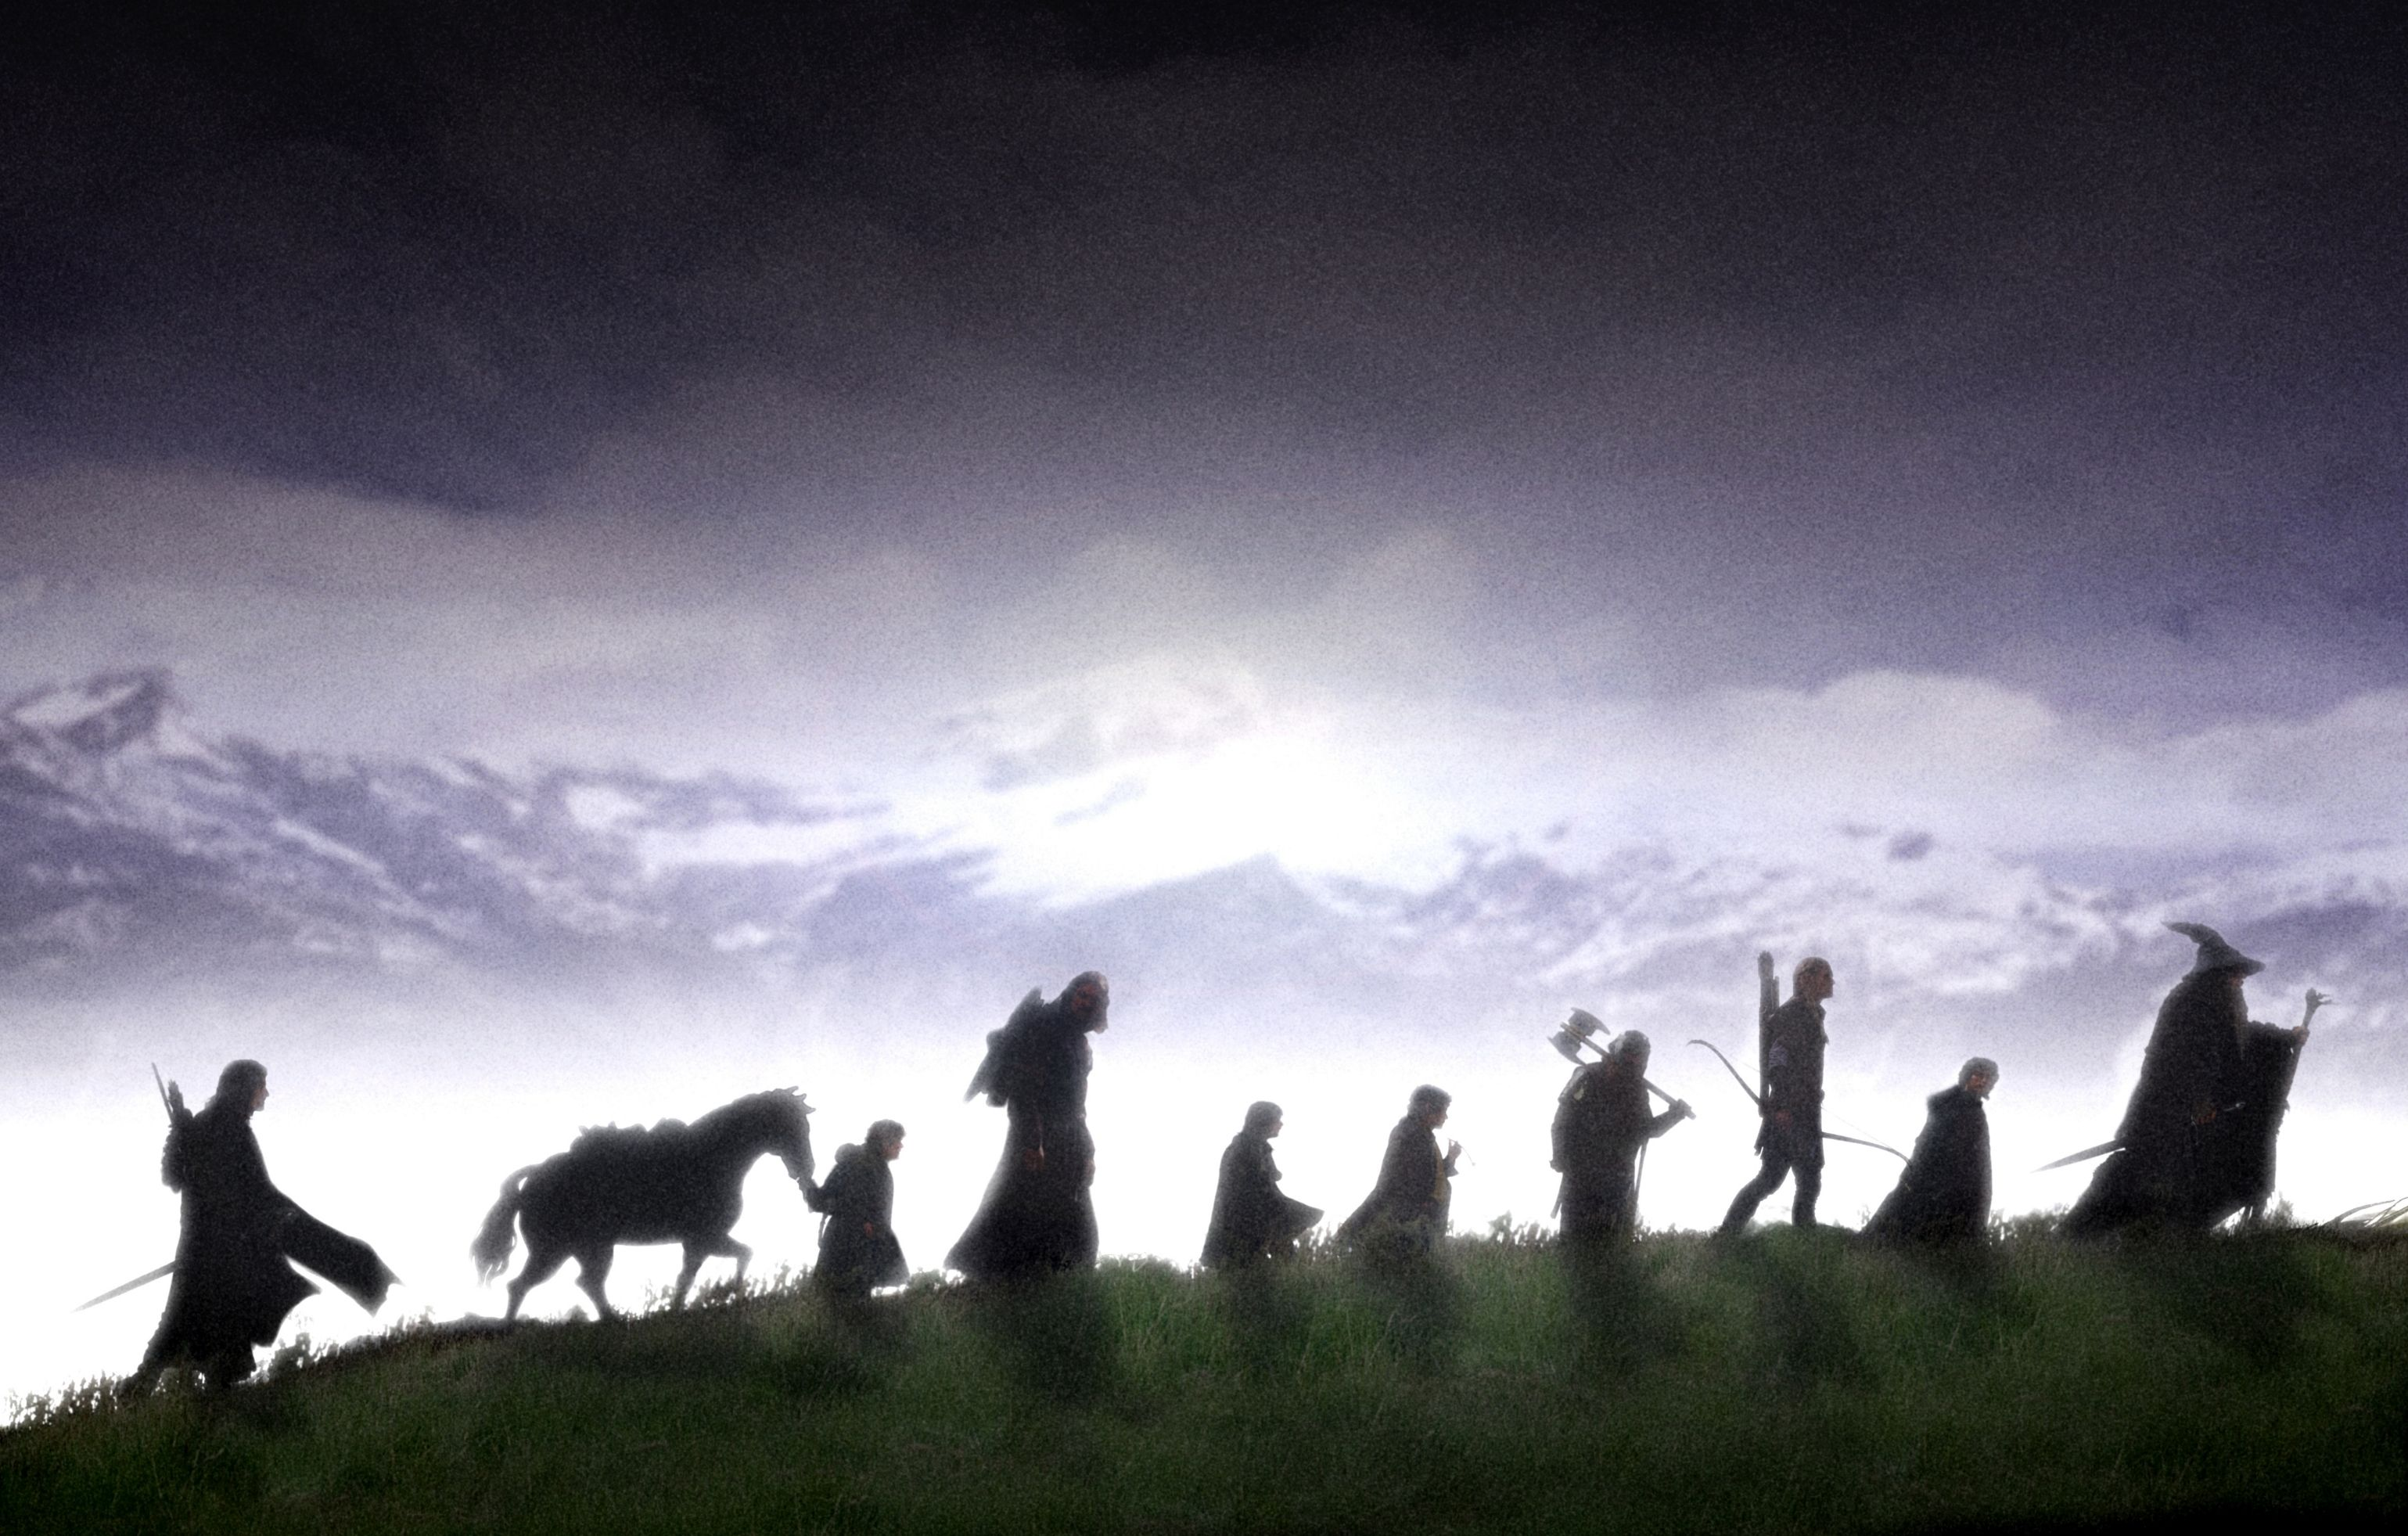 10 New Lord Of The Ring Wallpaper Full Hd 1080p For Pc Desktop In 2020 Lord Of The Rings Fellowship Of The Ring The Hobbit